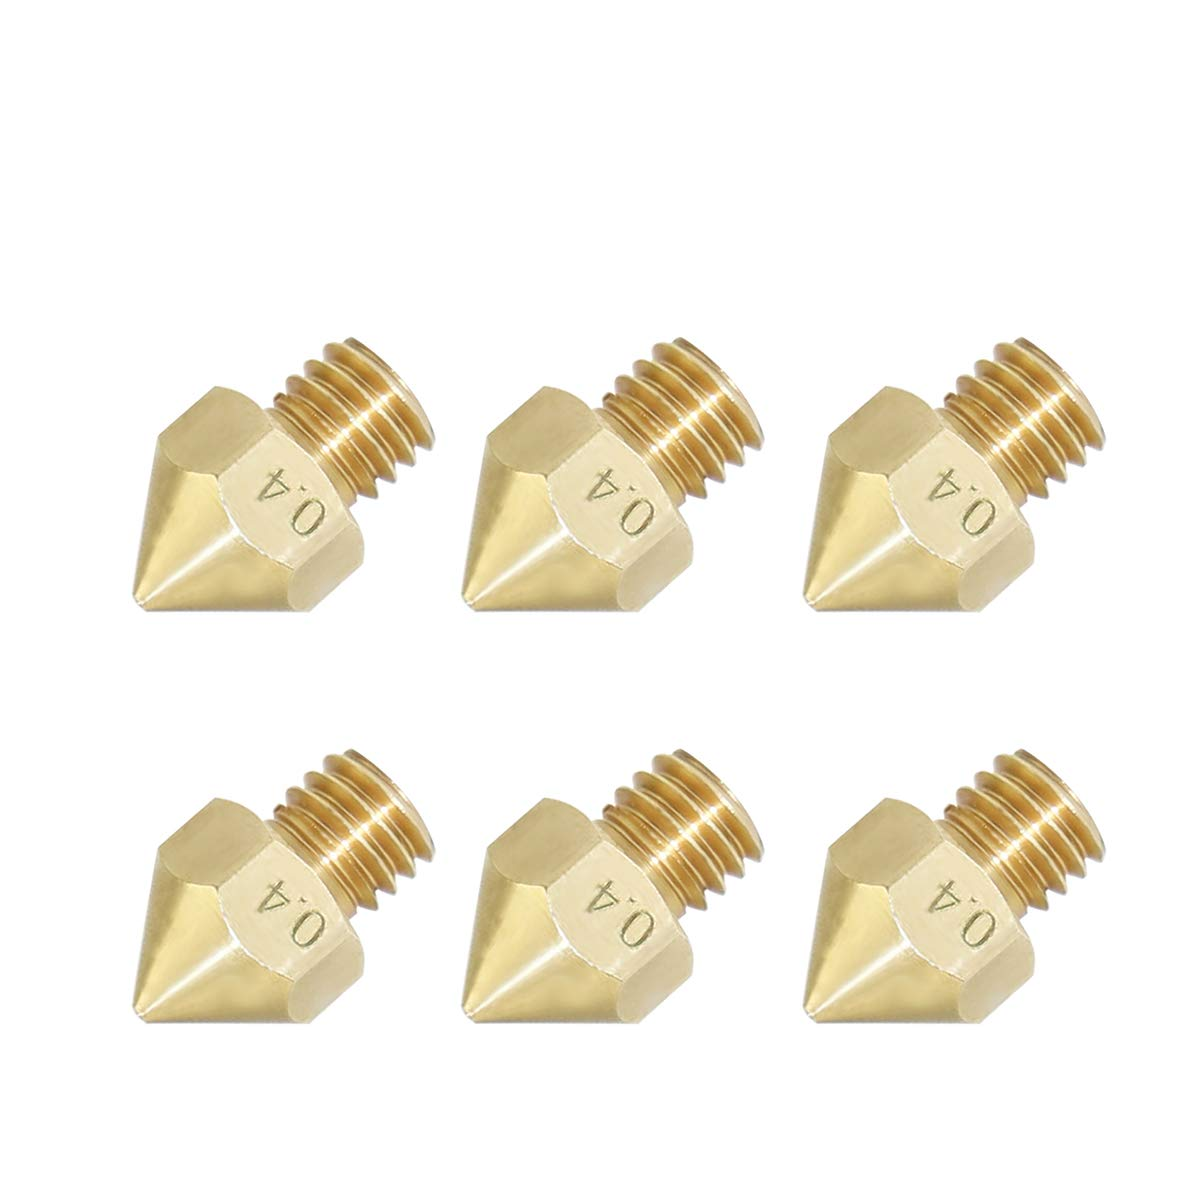 6Pcs Pack 3D Printer Extruders 0.4mm Nozzle 3D Printer Extruder Print Head for MK8 Makerbot 1.75mm (6 Pack) NAWINNER